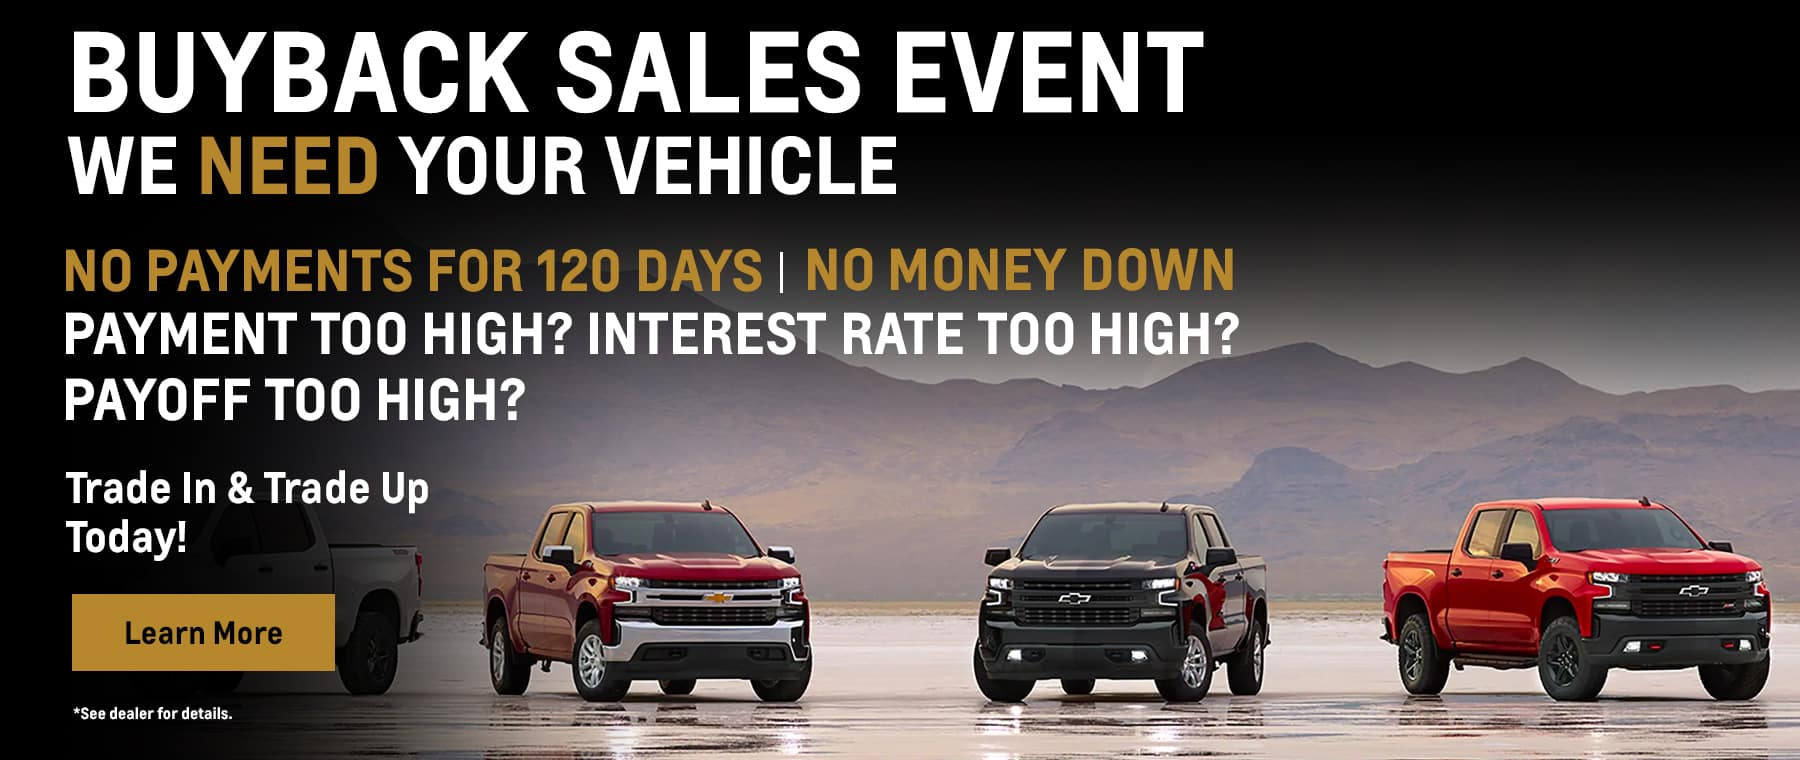 Over the past 30 days, we have sold many pre-owned vehicles. We need to restock our used vehicle inventory. No Payments for 120 days No MONEY DOWN PAYMENT TOO HIGH? INTEREST RATE TOO HIGH? PAYOFF TOO HIGH? STUCK in a Lease? - Ask us about our early Termination program designed to help with excessive mileage, and wear and tear penalties! We are here to HELP! NEW INCENTIVES PLUS OUR HIGHEST TRADE-IN OFFER EVER MAKE IT POSSIBLE TO... TRADE-IN TRADE-UP Possibly GET LOWER PAYMENTS Disclaimer:(See dealer for details. Offers can not be combined. Sale ends 6/30/2021)